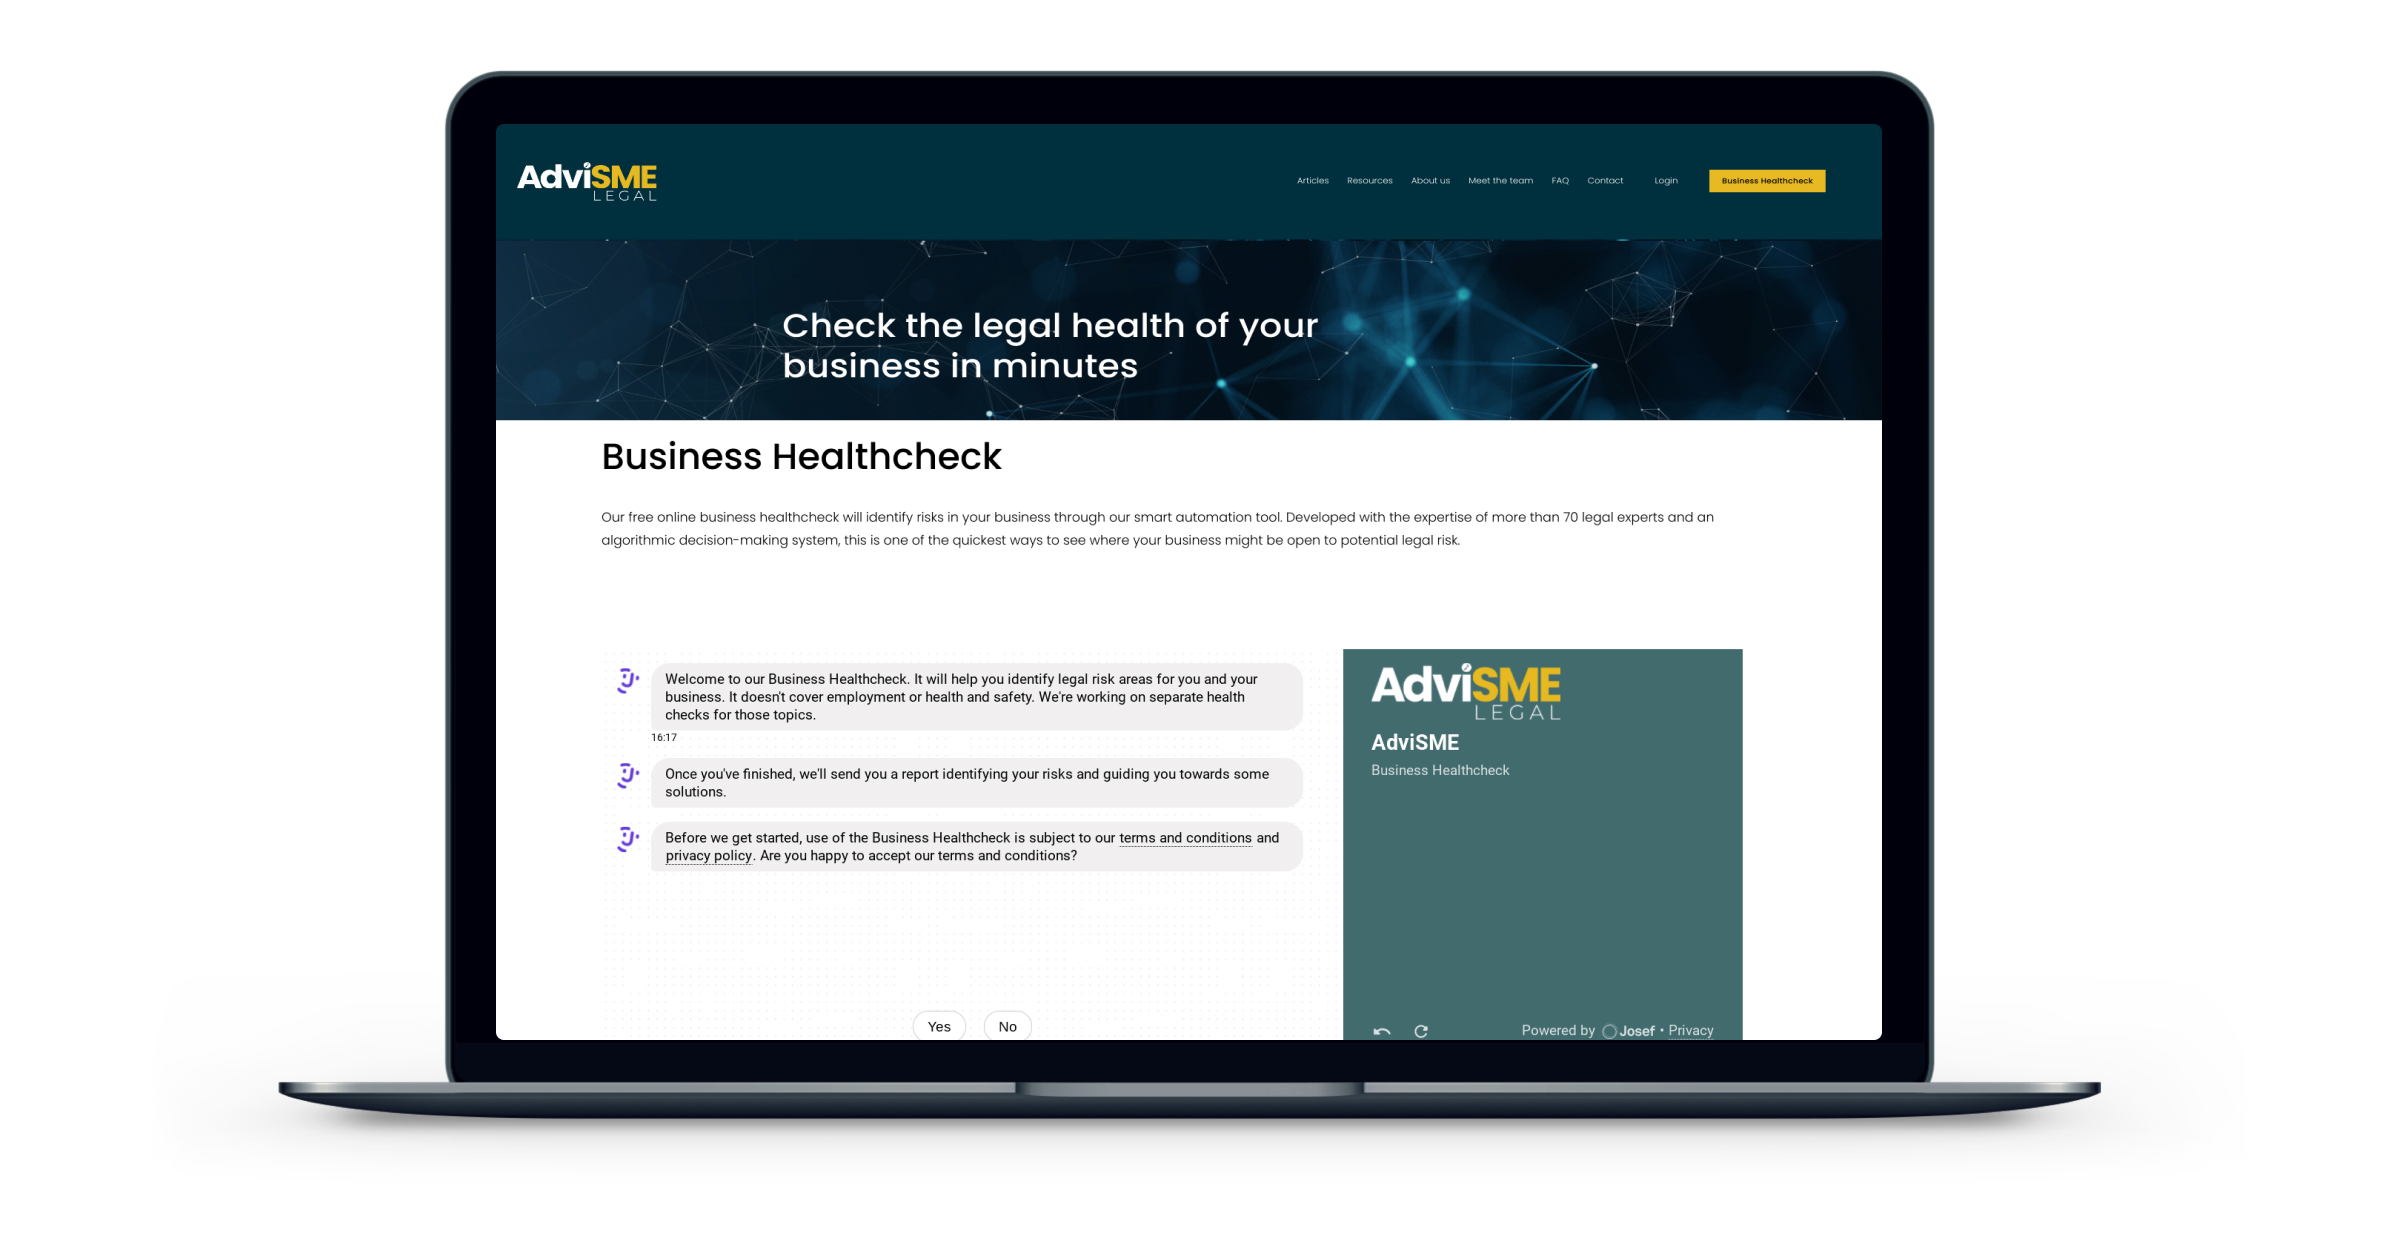 The AdviSME bot gives business owners a legal health check in the time it takes for a coffee break